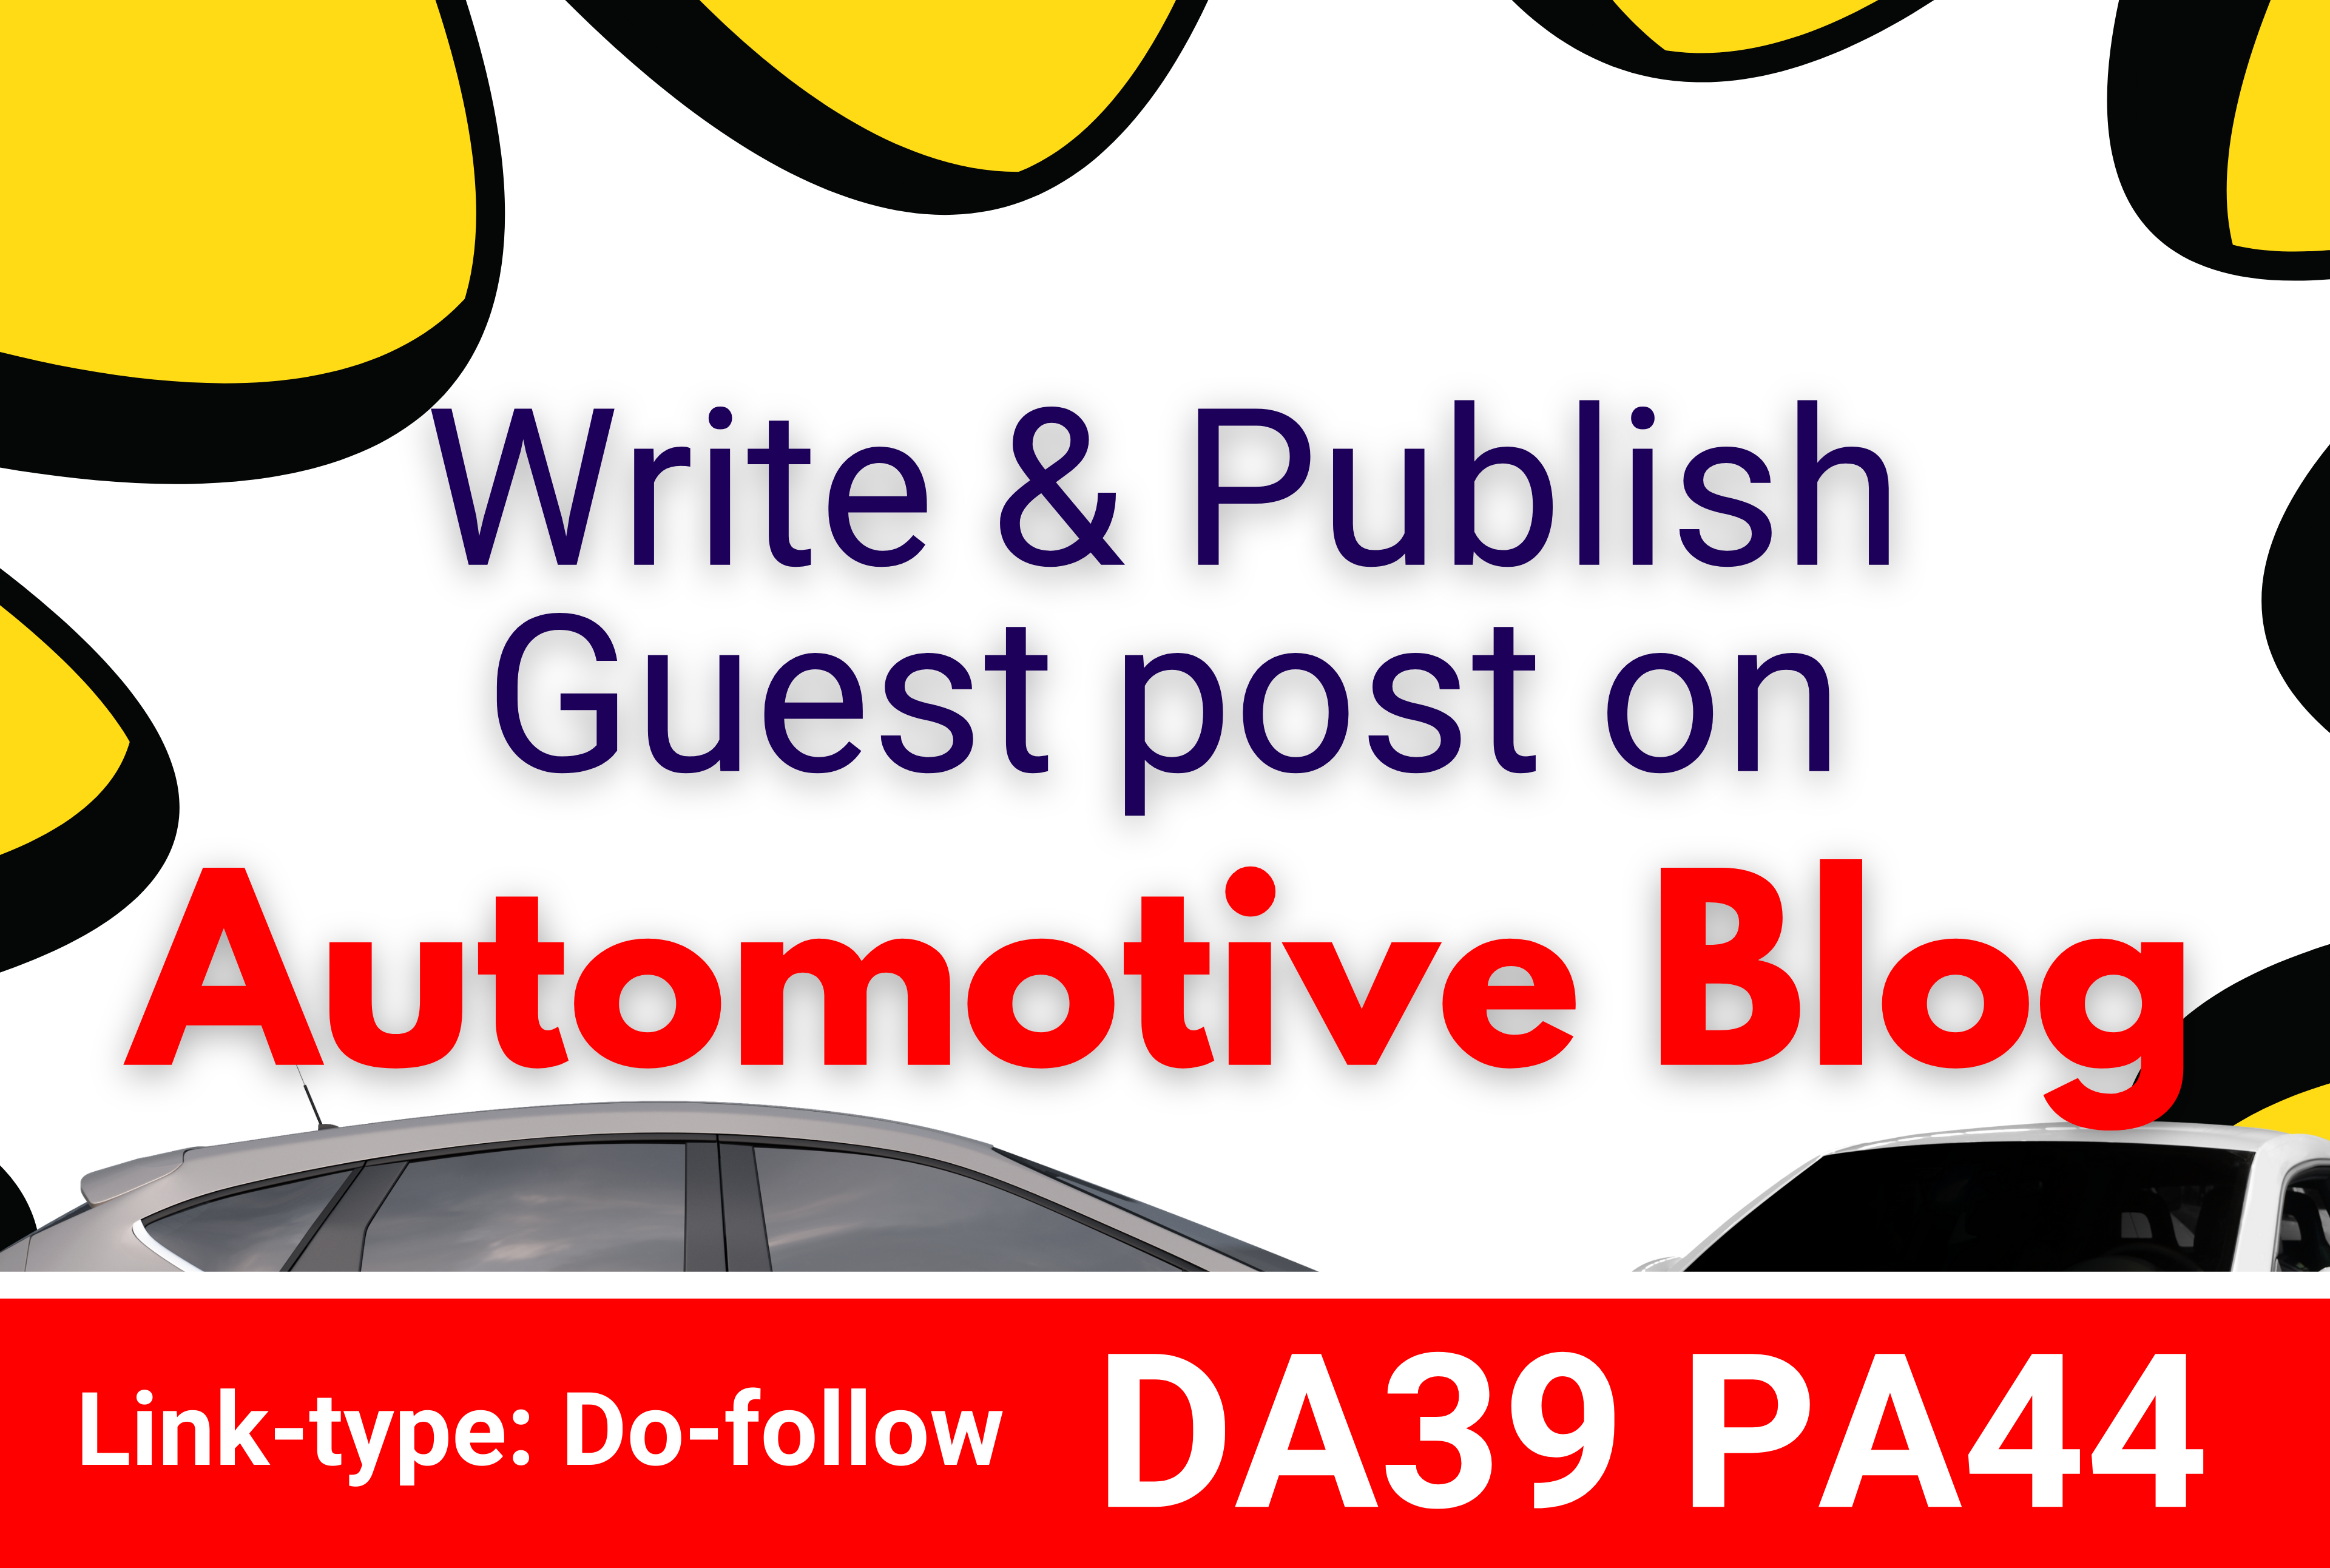 I will Write & Publish a Guest post on Automotive blog